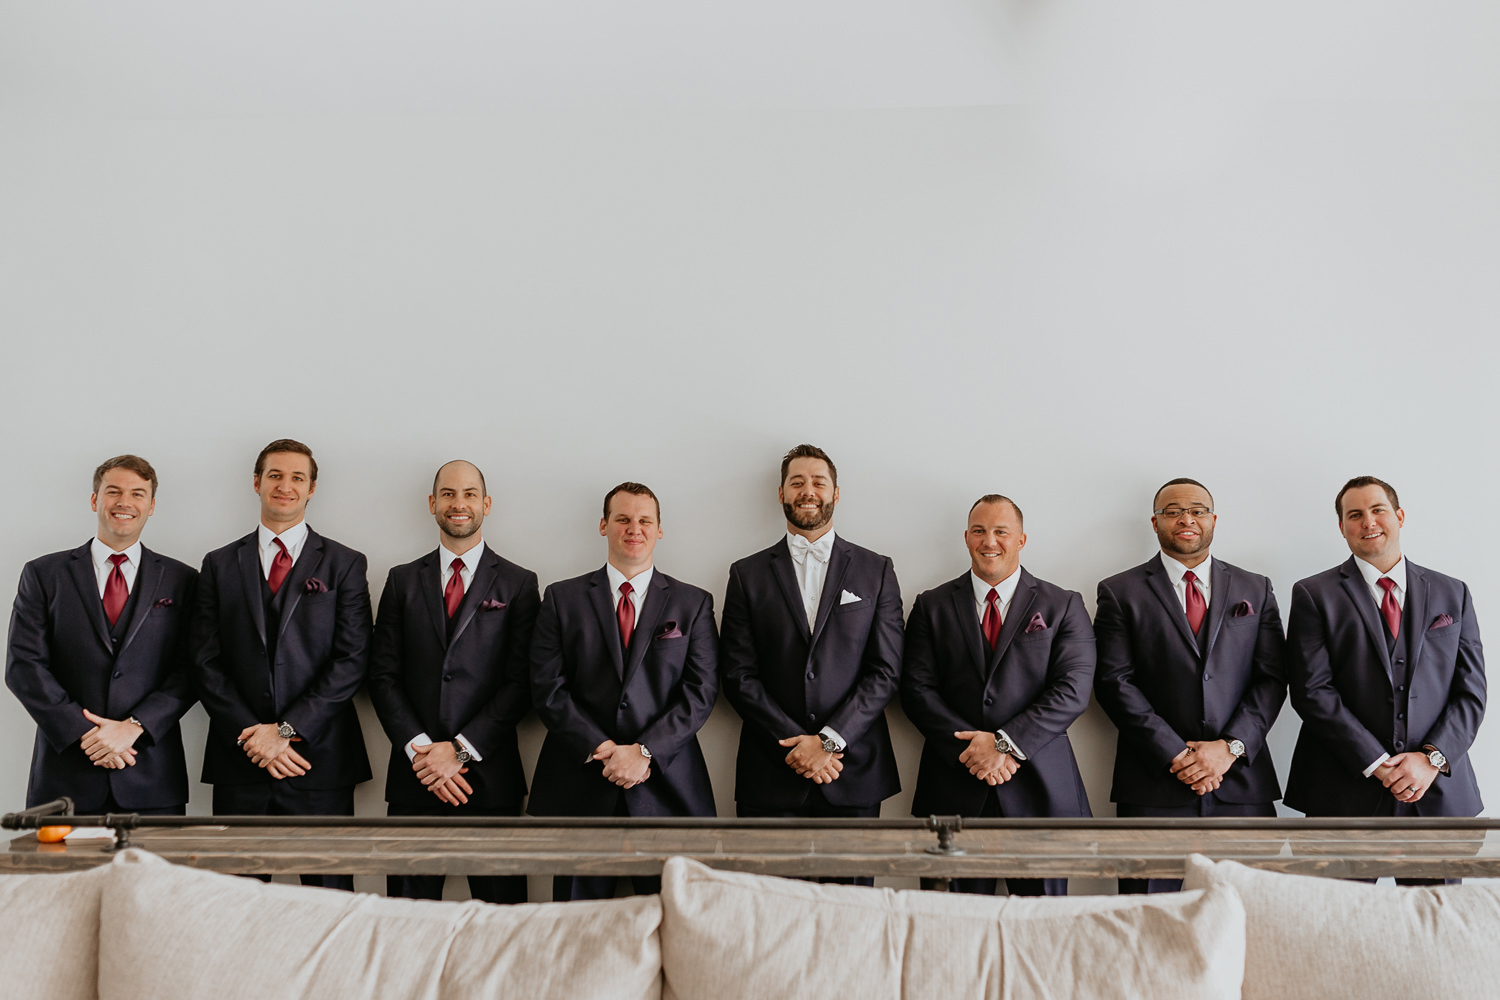 groom and seven groomsmen lined up smiling at camera in front of white wall